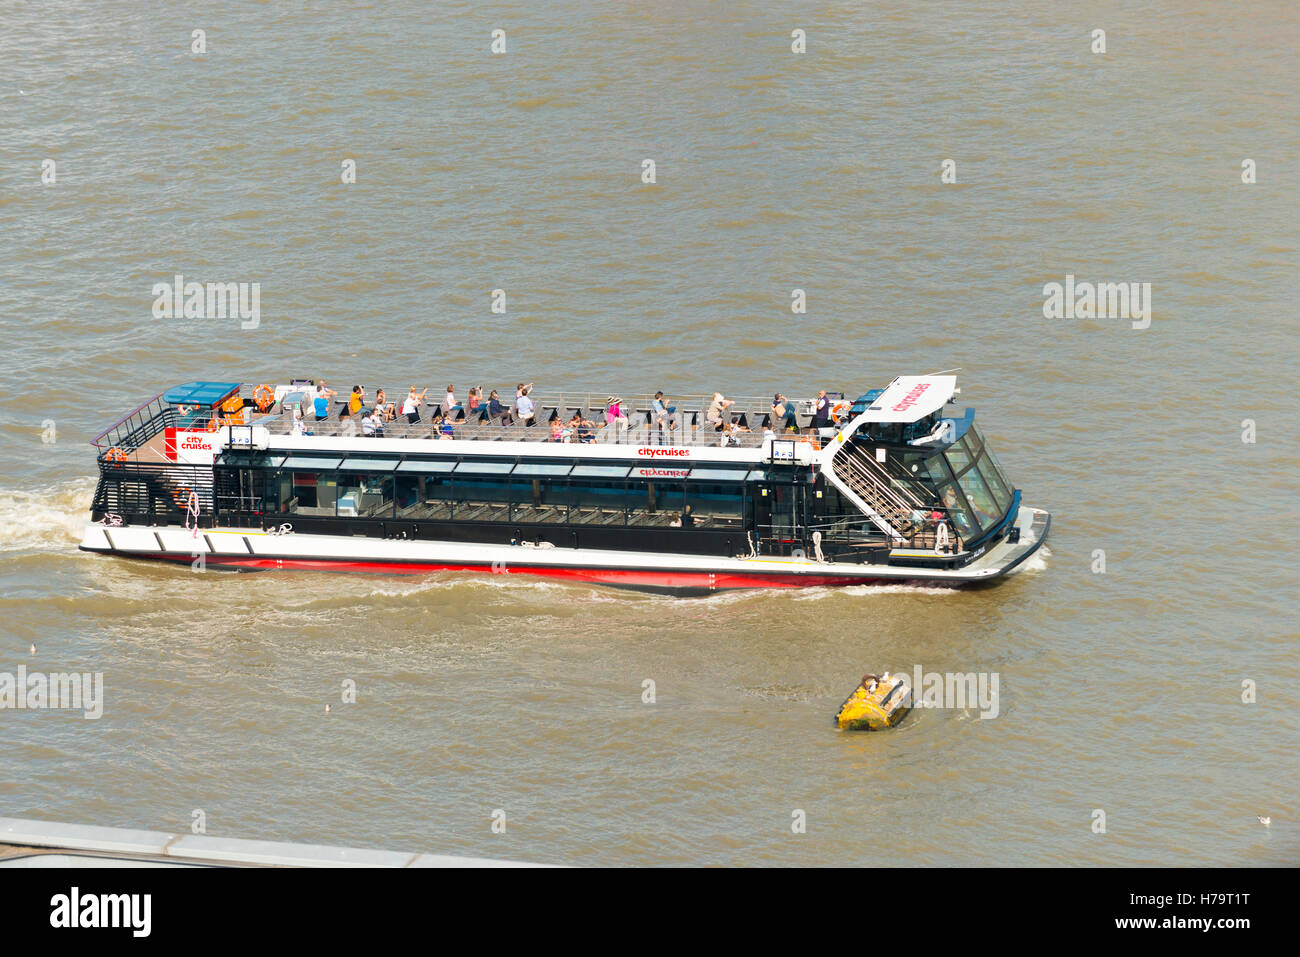 London Southbank Tate Modern Alpha City Cruise boat ship on River Thames with tourists - Stock Image